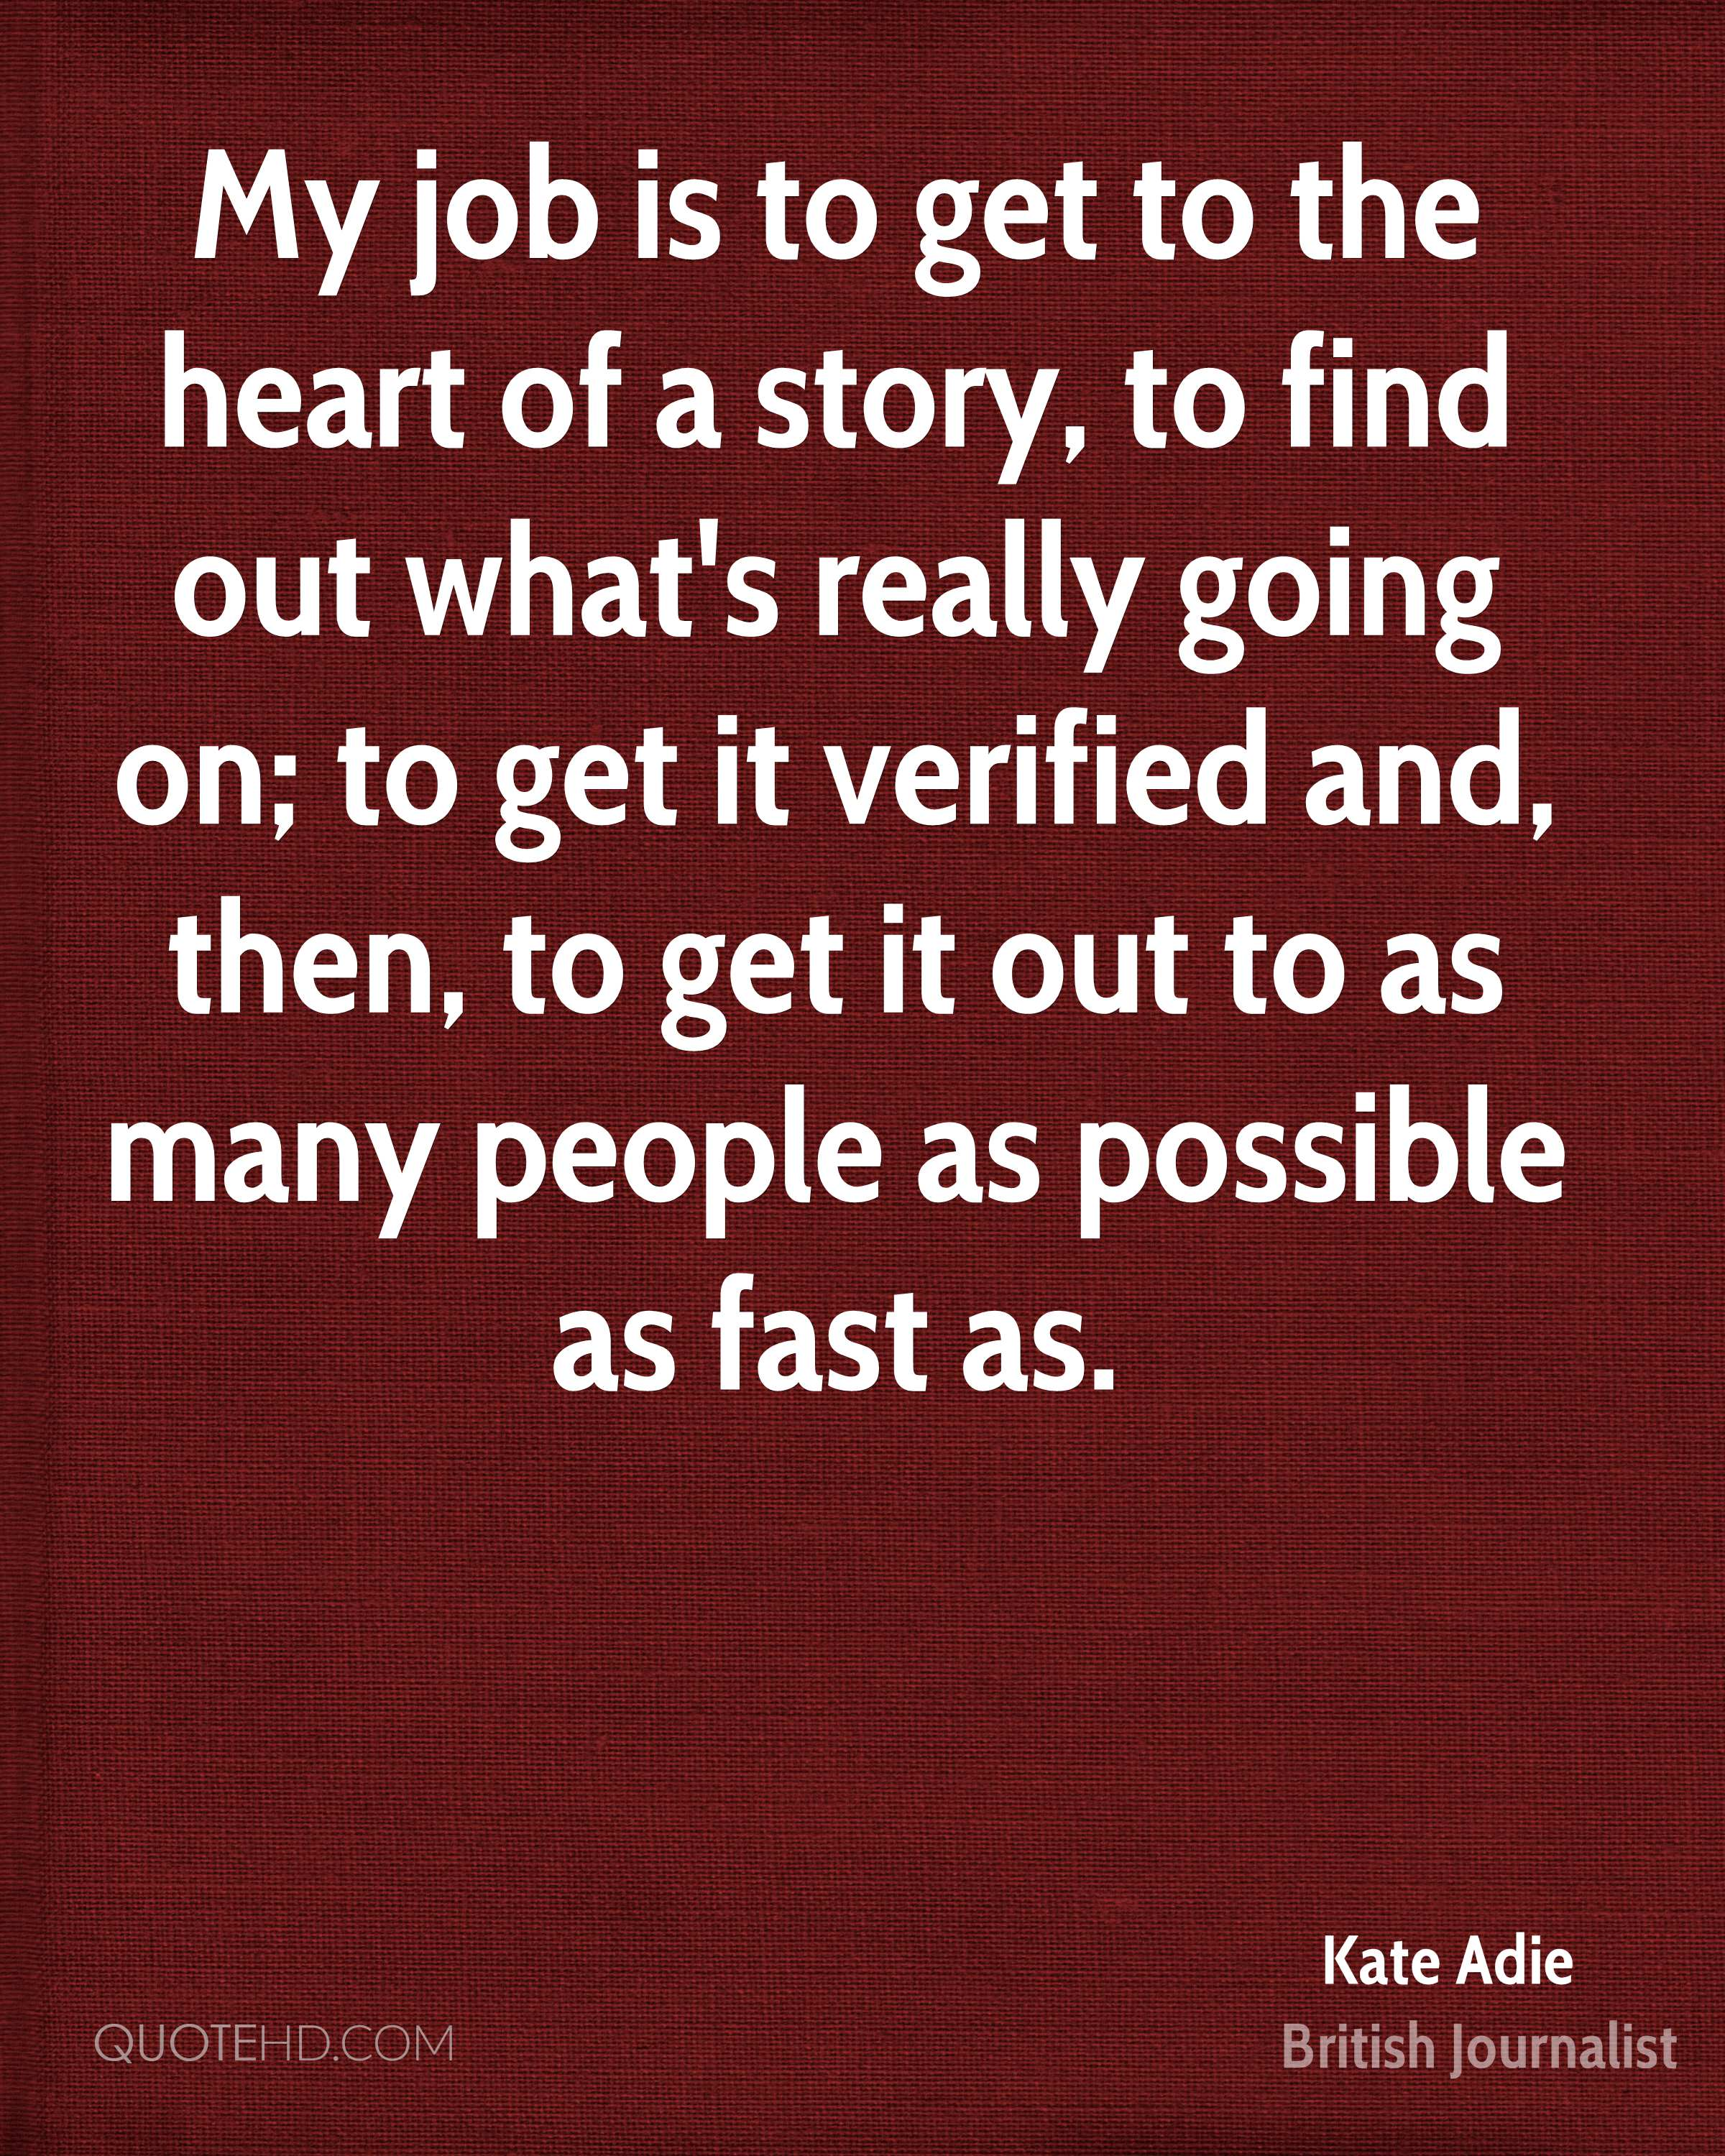 My job is to get to the heart of a story, to find out what's really going on; to get it verified and, then, to get it out to as many people as possible as fast as.